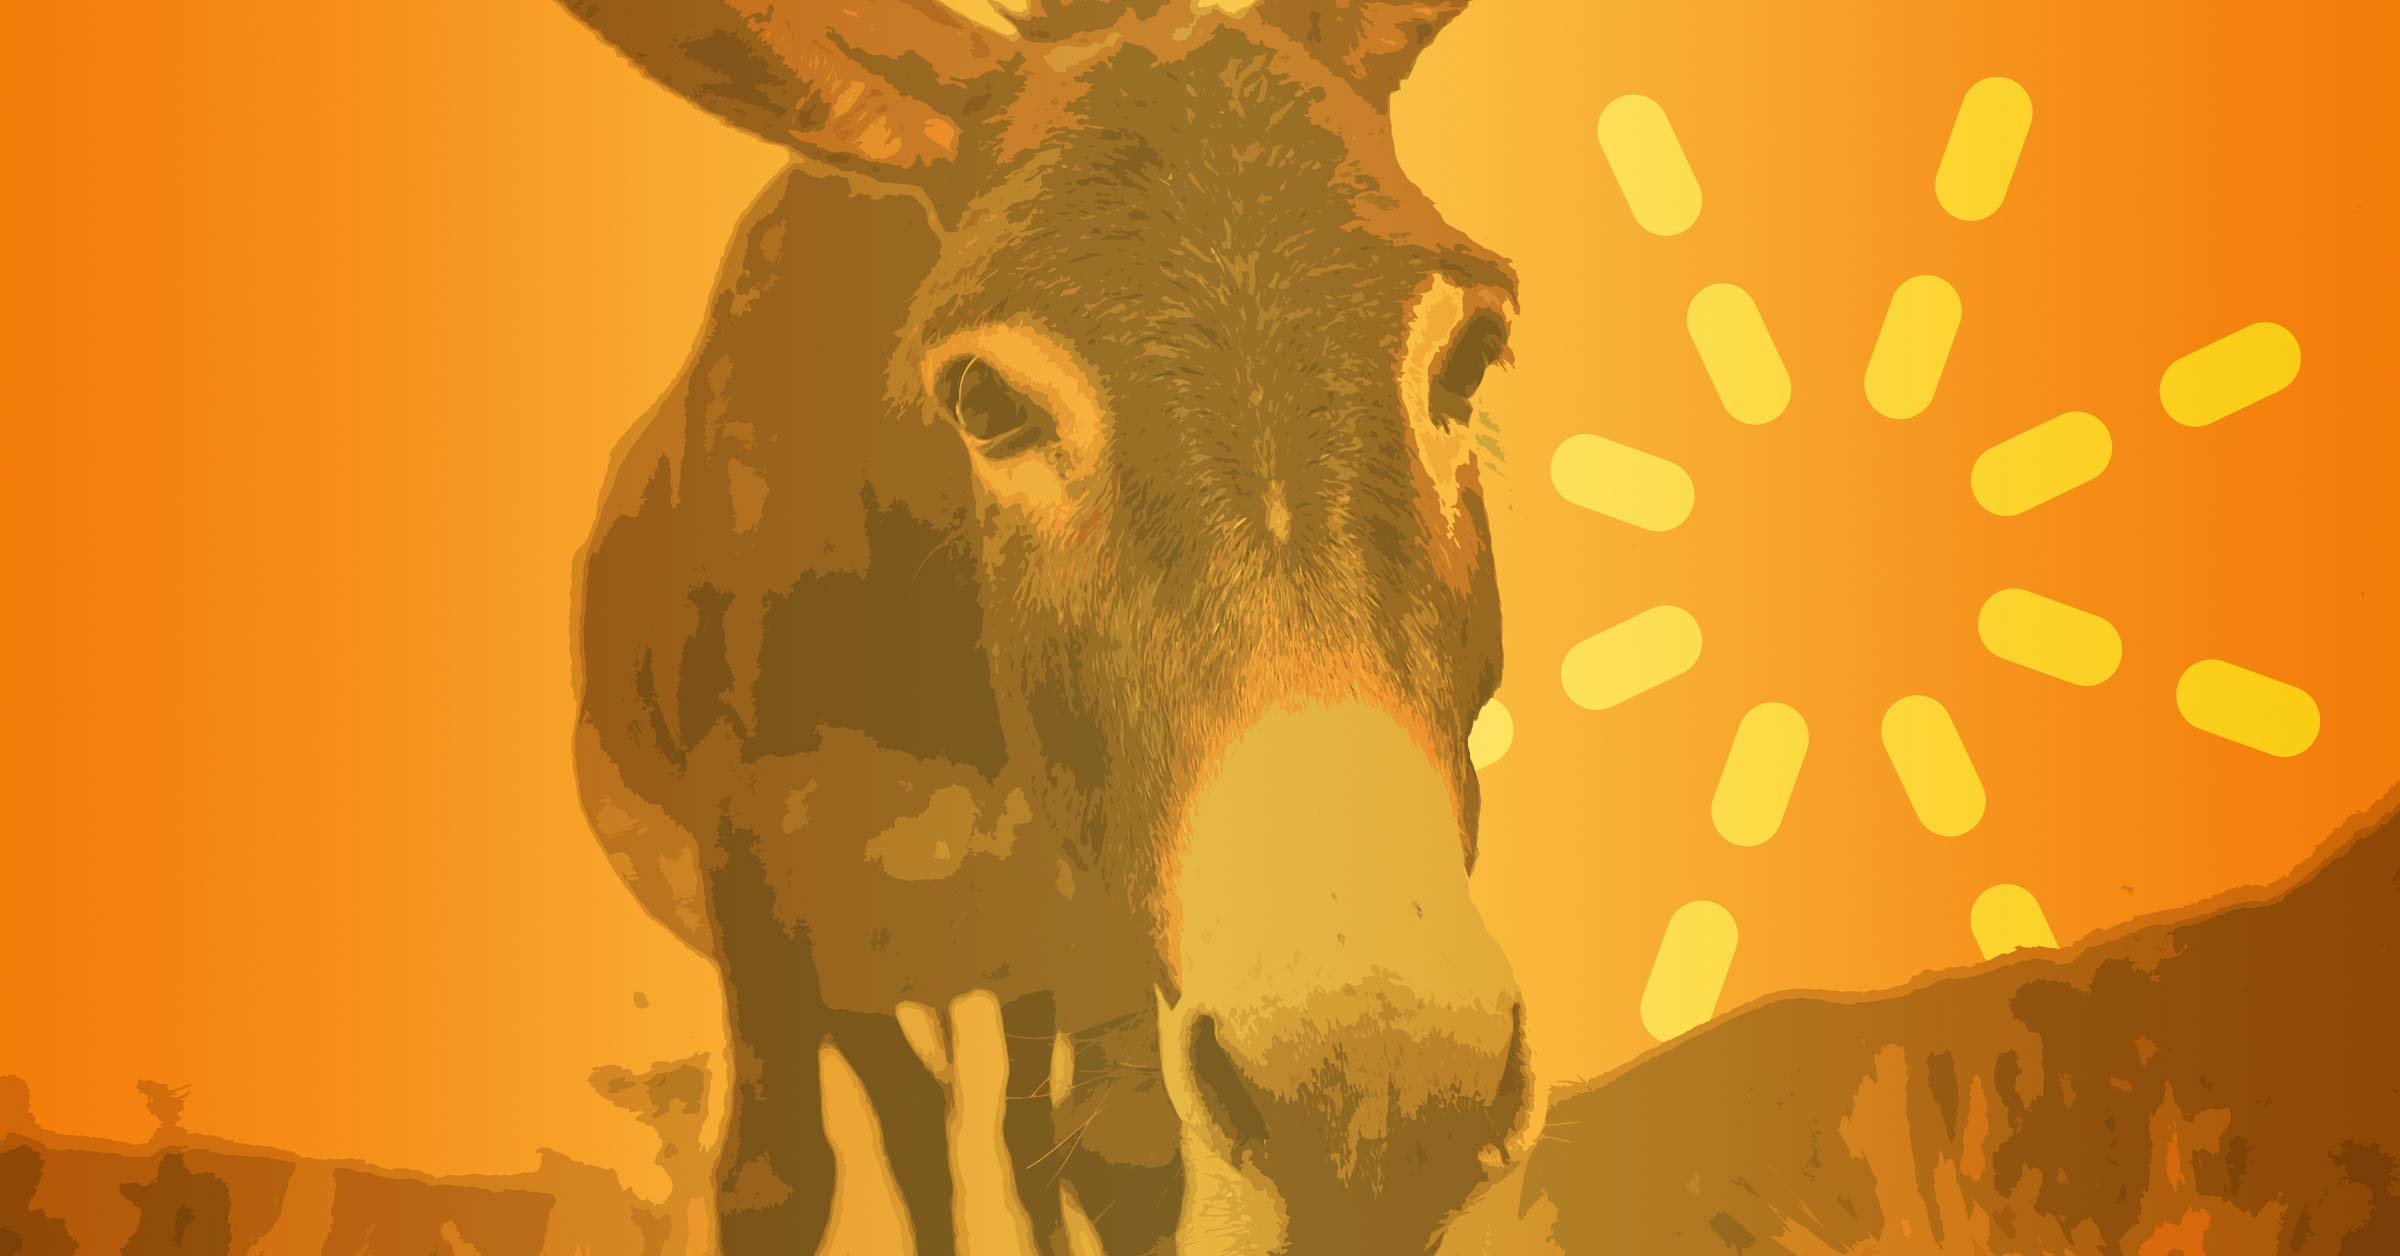 Donkey in the Story of Balaam